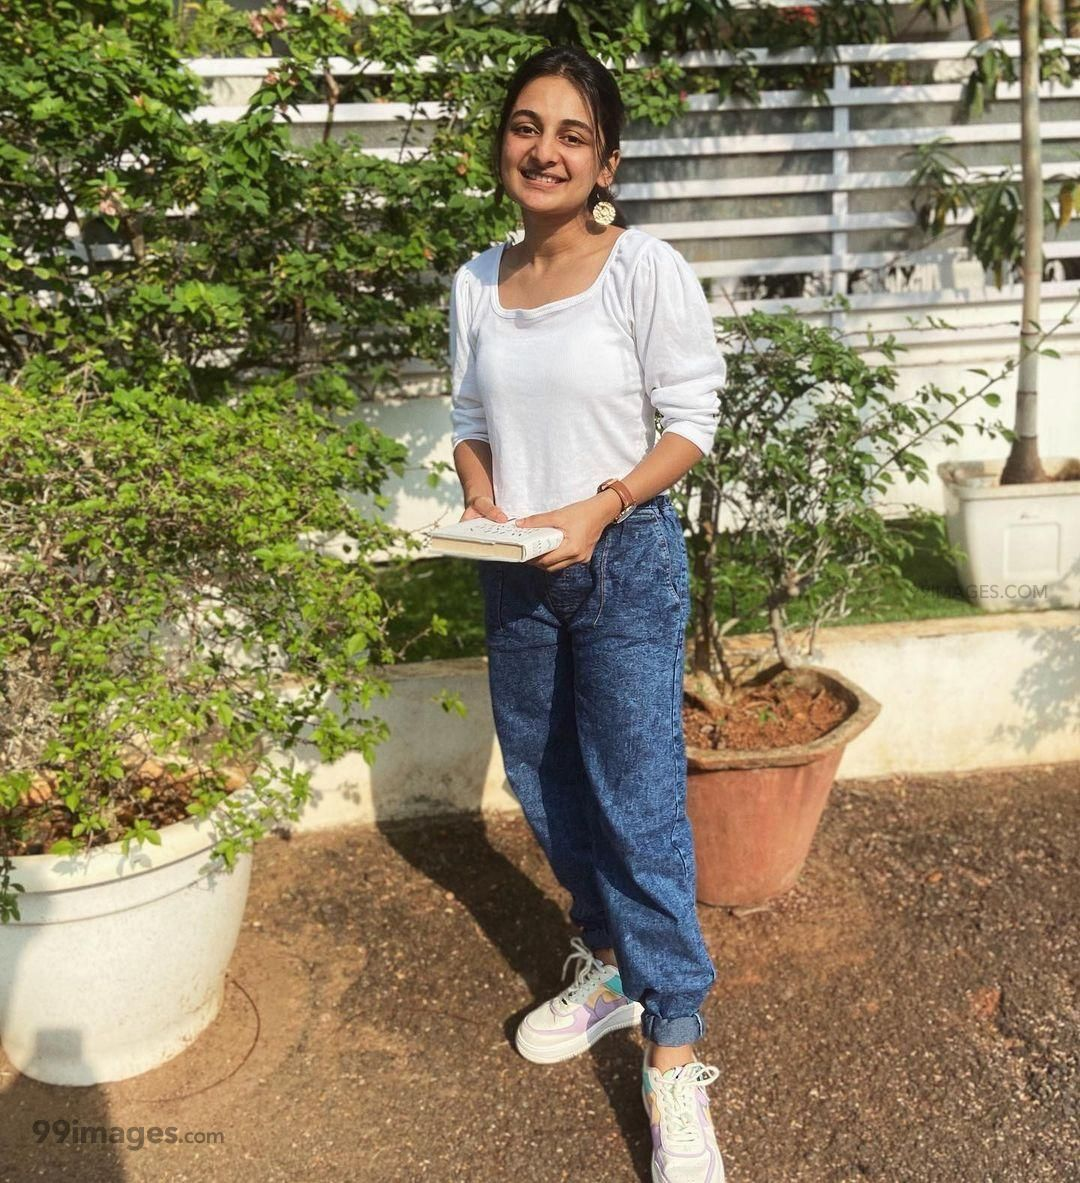 Esther Anil Hot HD Photos, Wallpapers, WhatsApp DP (1080p) (802840) - Esther Anil